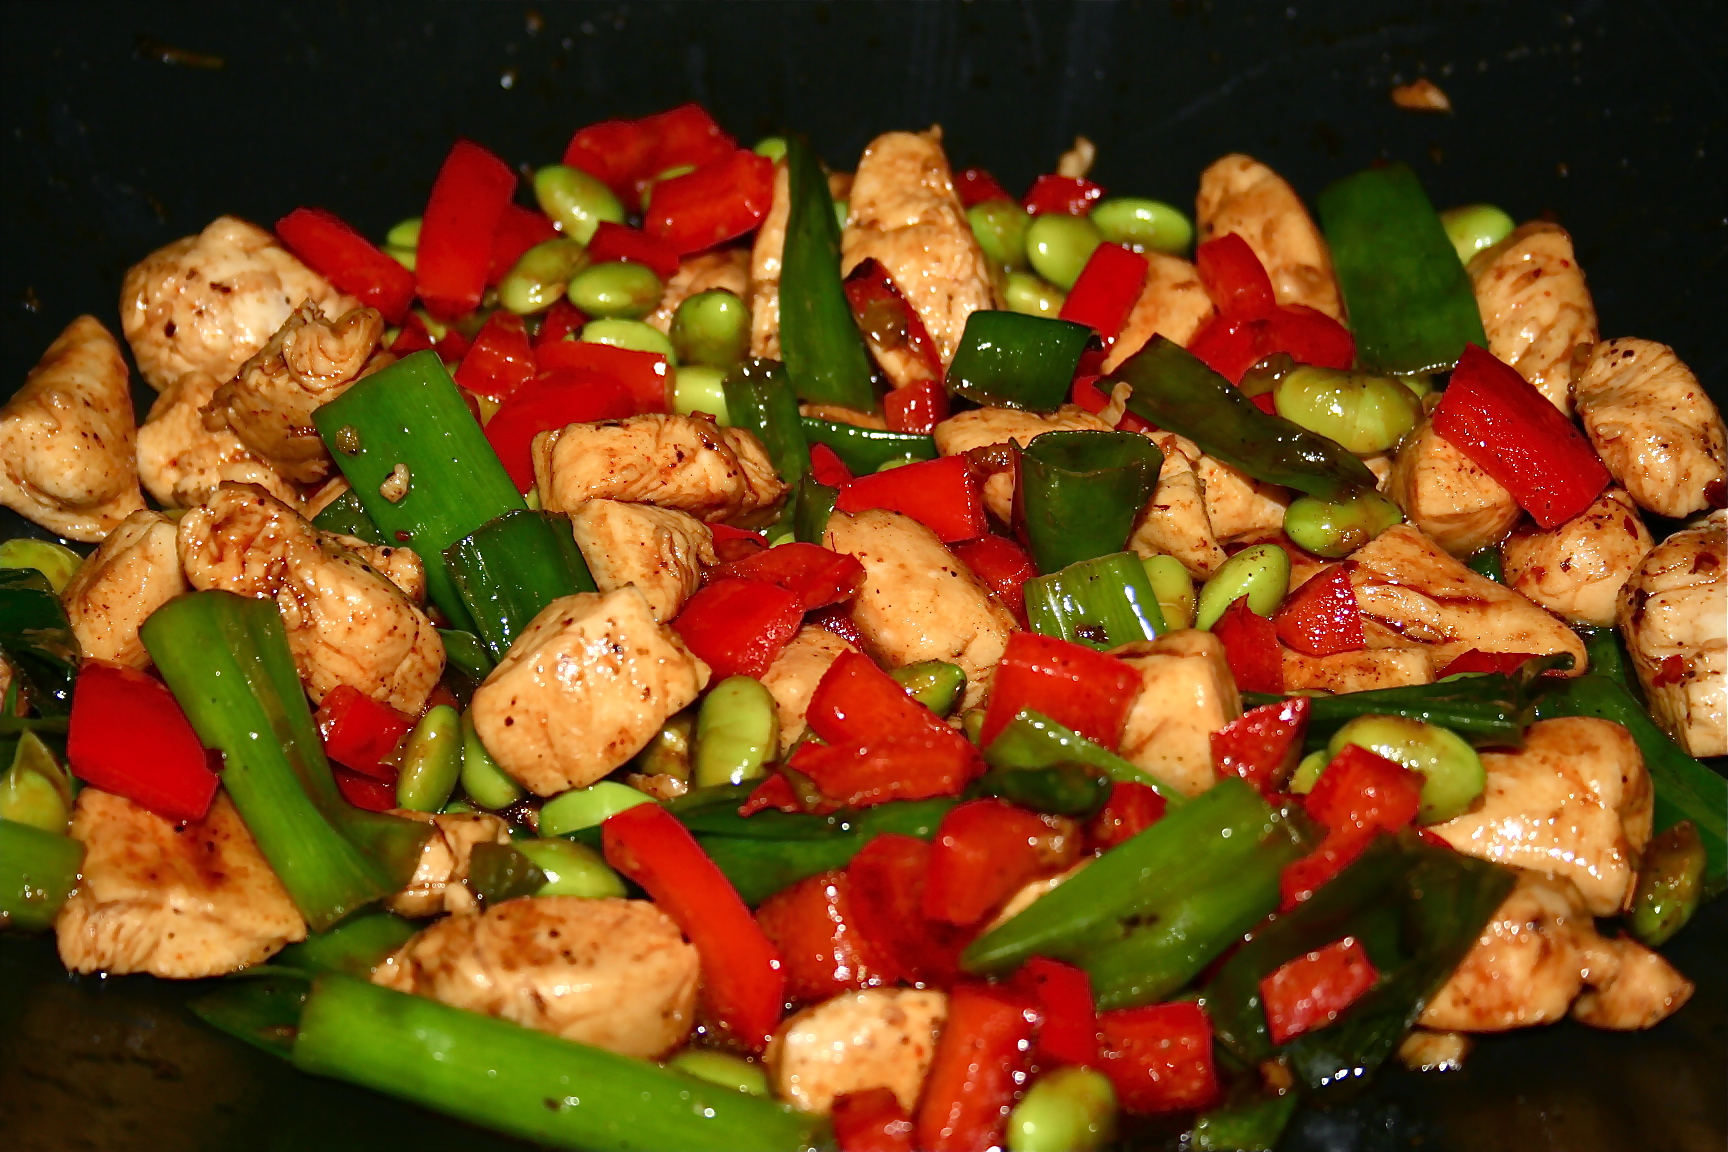 ... chicken the chicken noodle salad kung pao chicken sichuan style stir